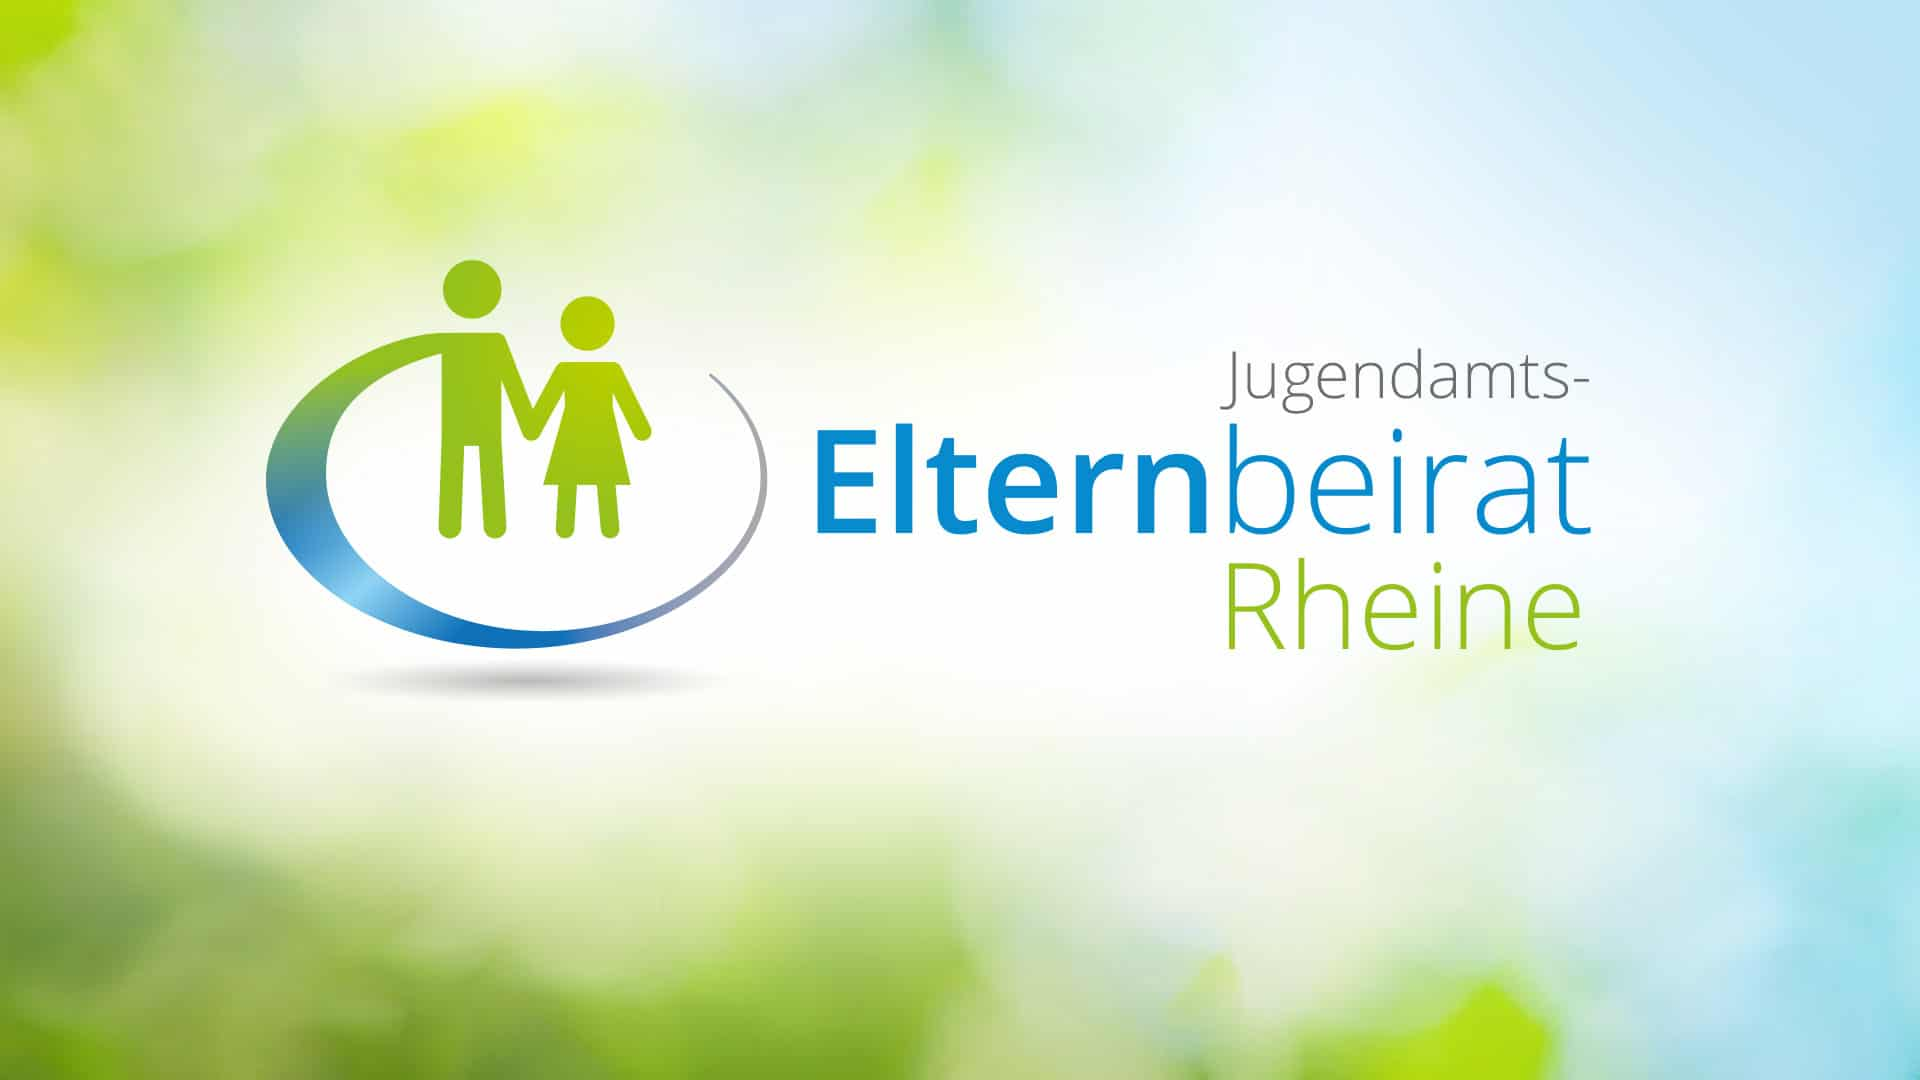 Corporate Design Jugendamtselternbeirat Rheine - Corporate Design